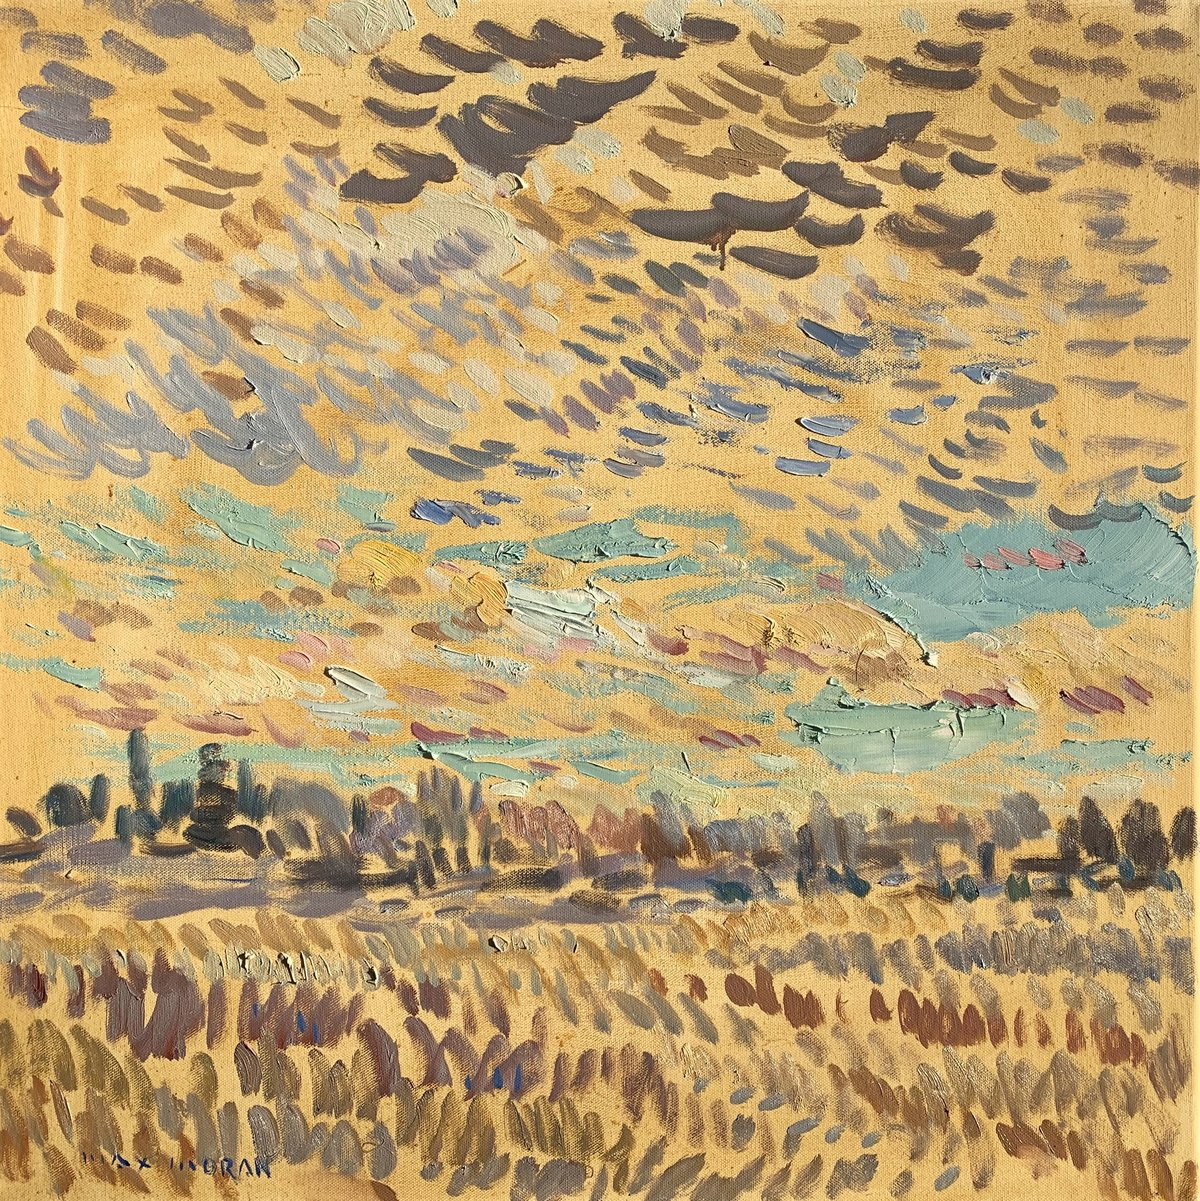 Open Field 24 x 24 ooc 3,800